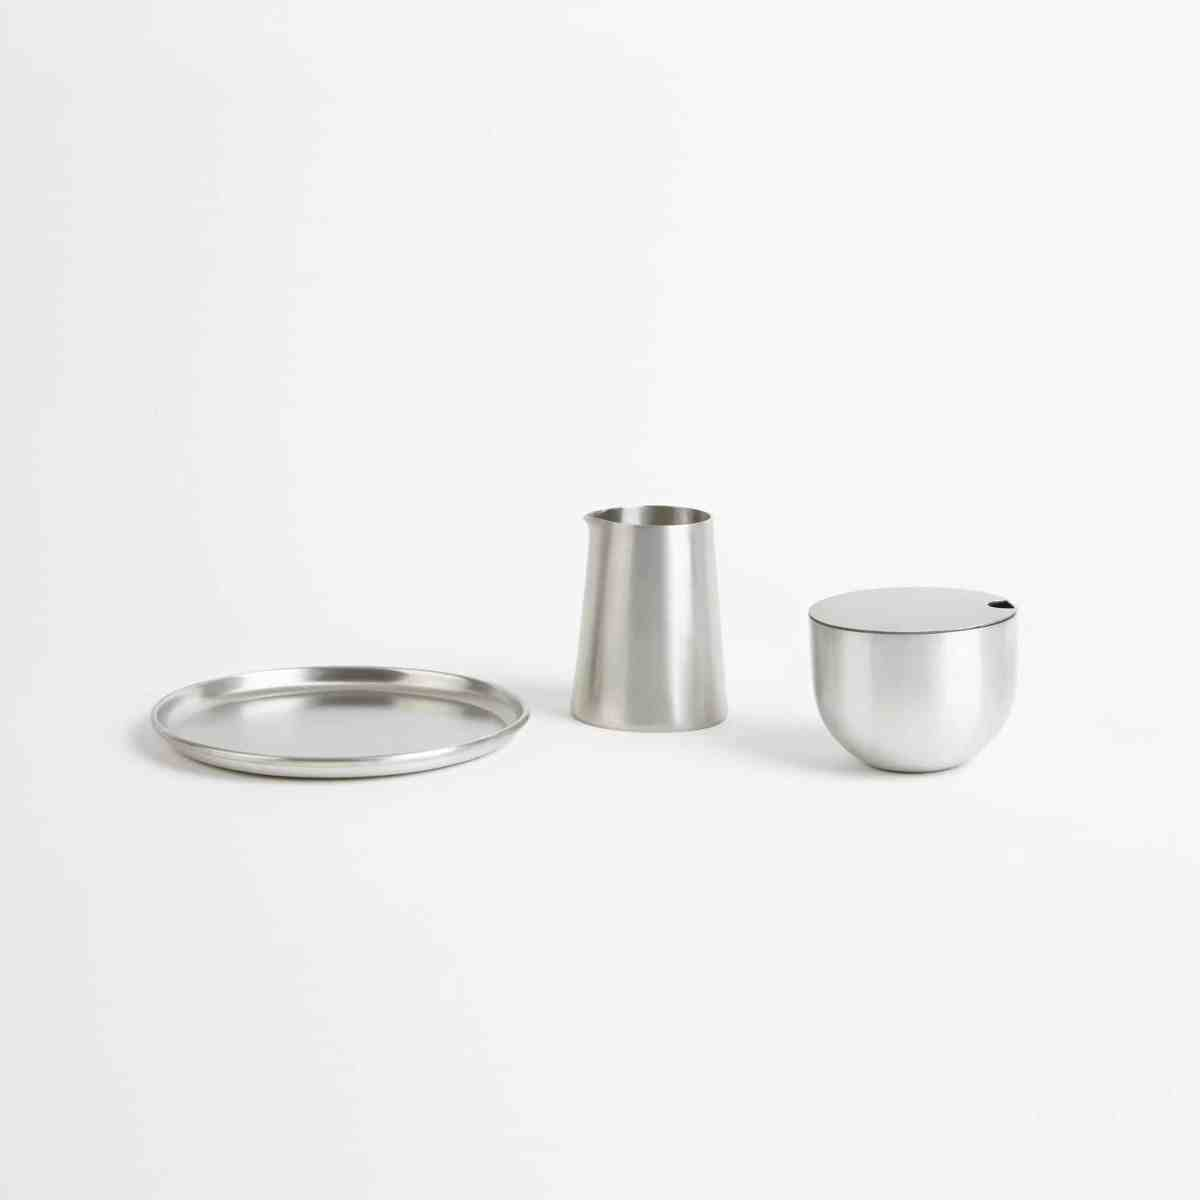 pottery-series-pewter-another-country-002